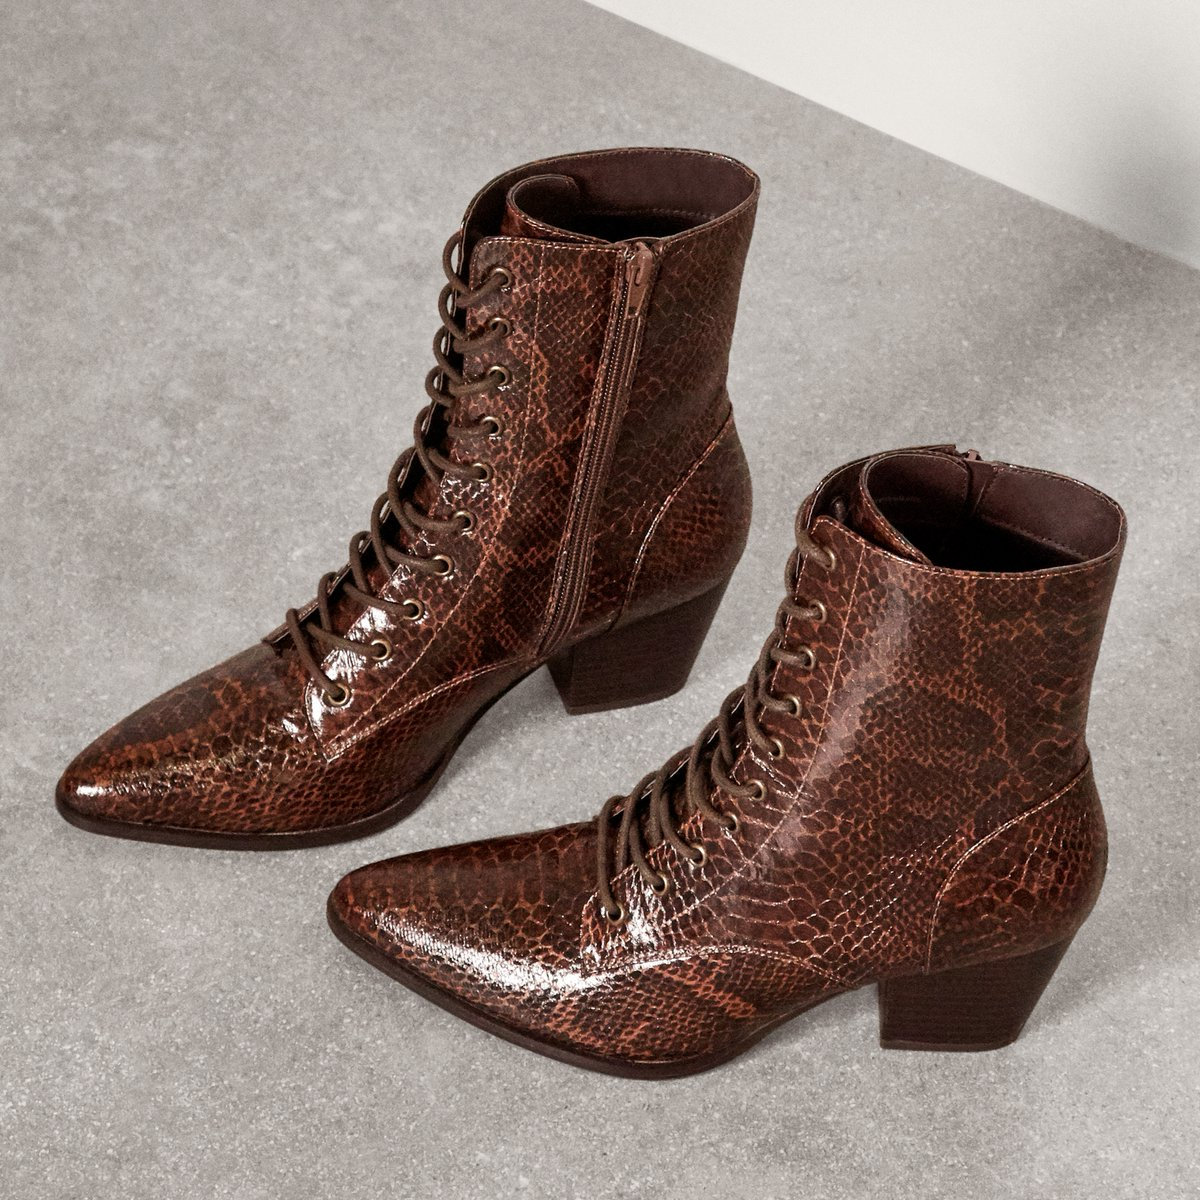 The Calico Lace-up Boot is the ultimate go-to silhouette for fall. Pair it with any look for an instant style-boost. https://t.co/YCEcyLlB1J https://t.co/moXrhFwMbW